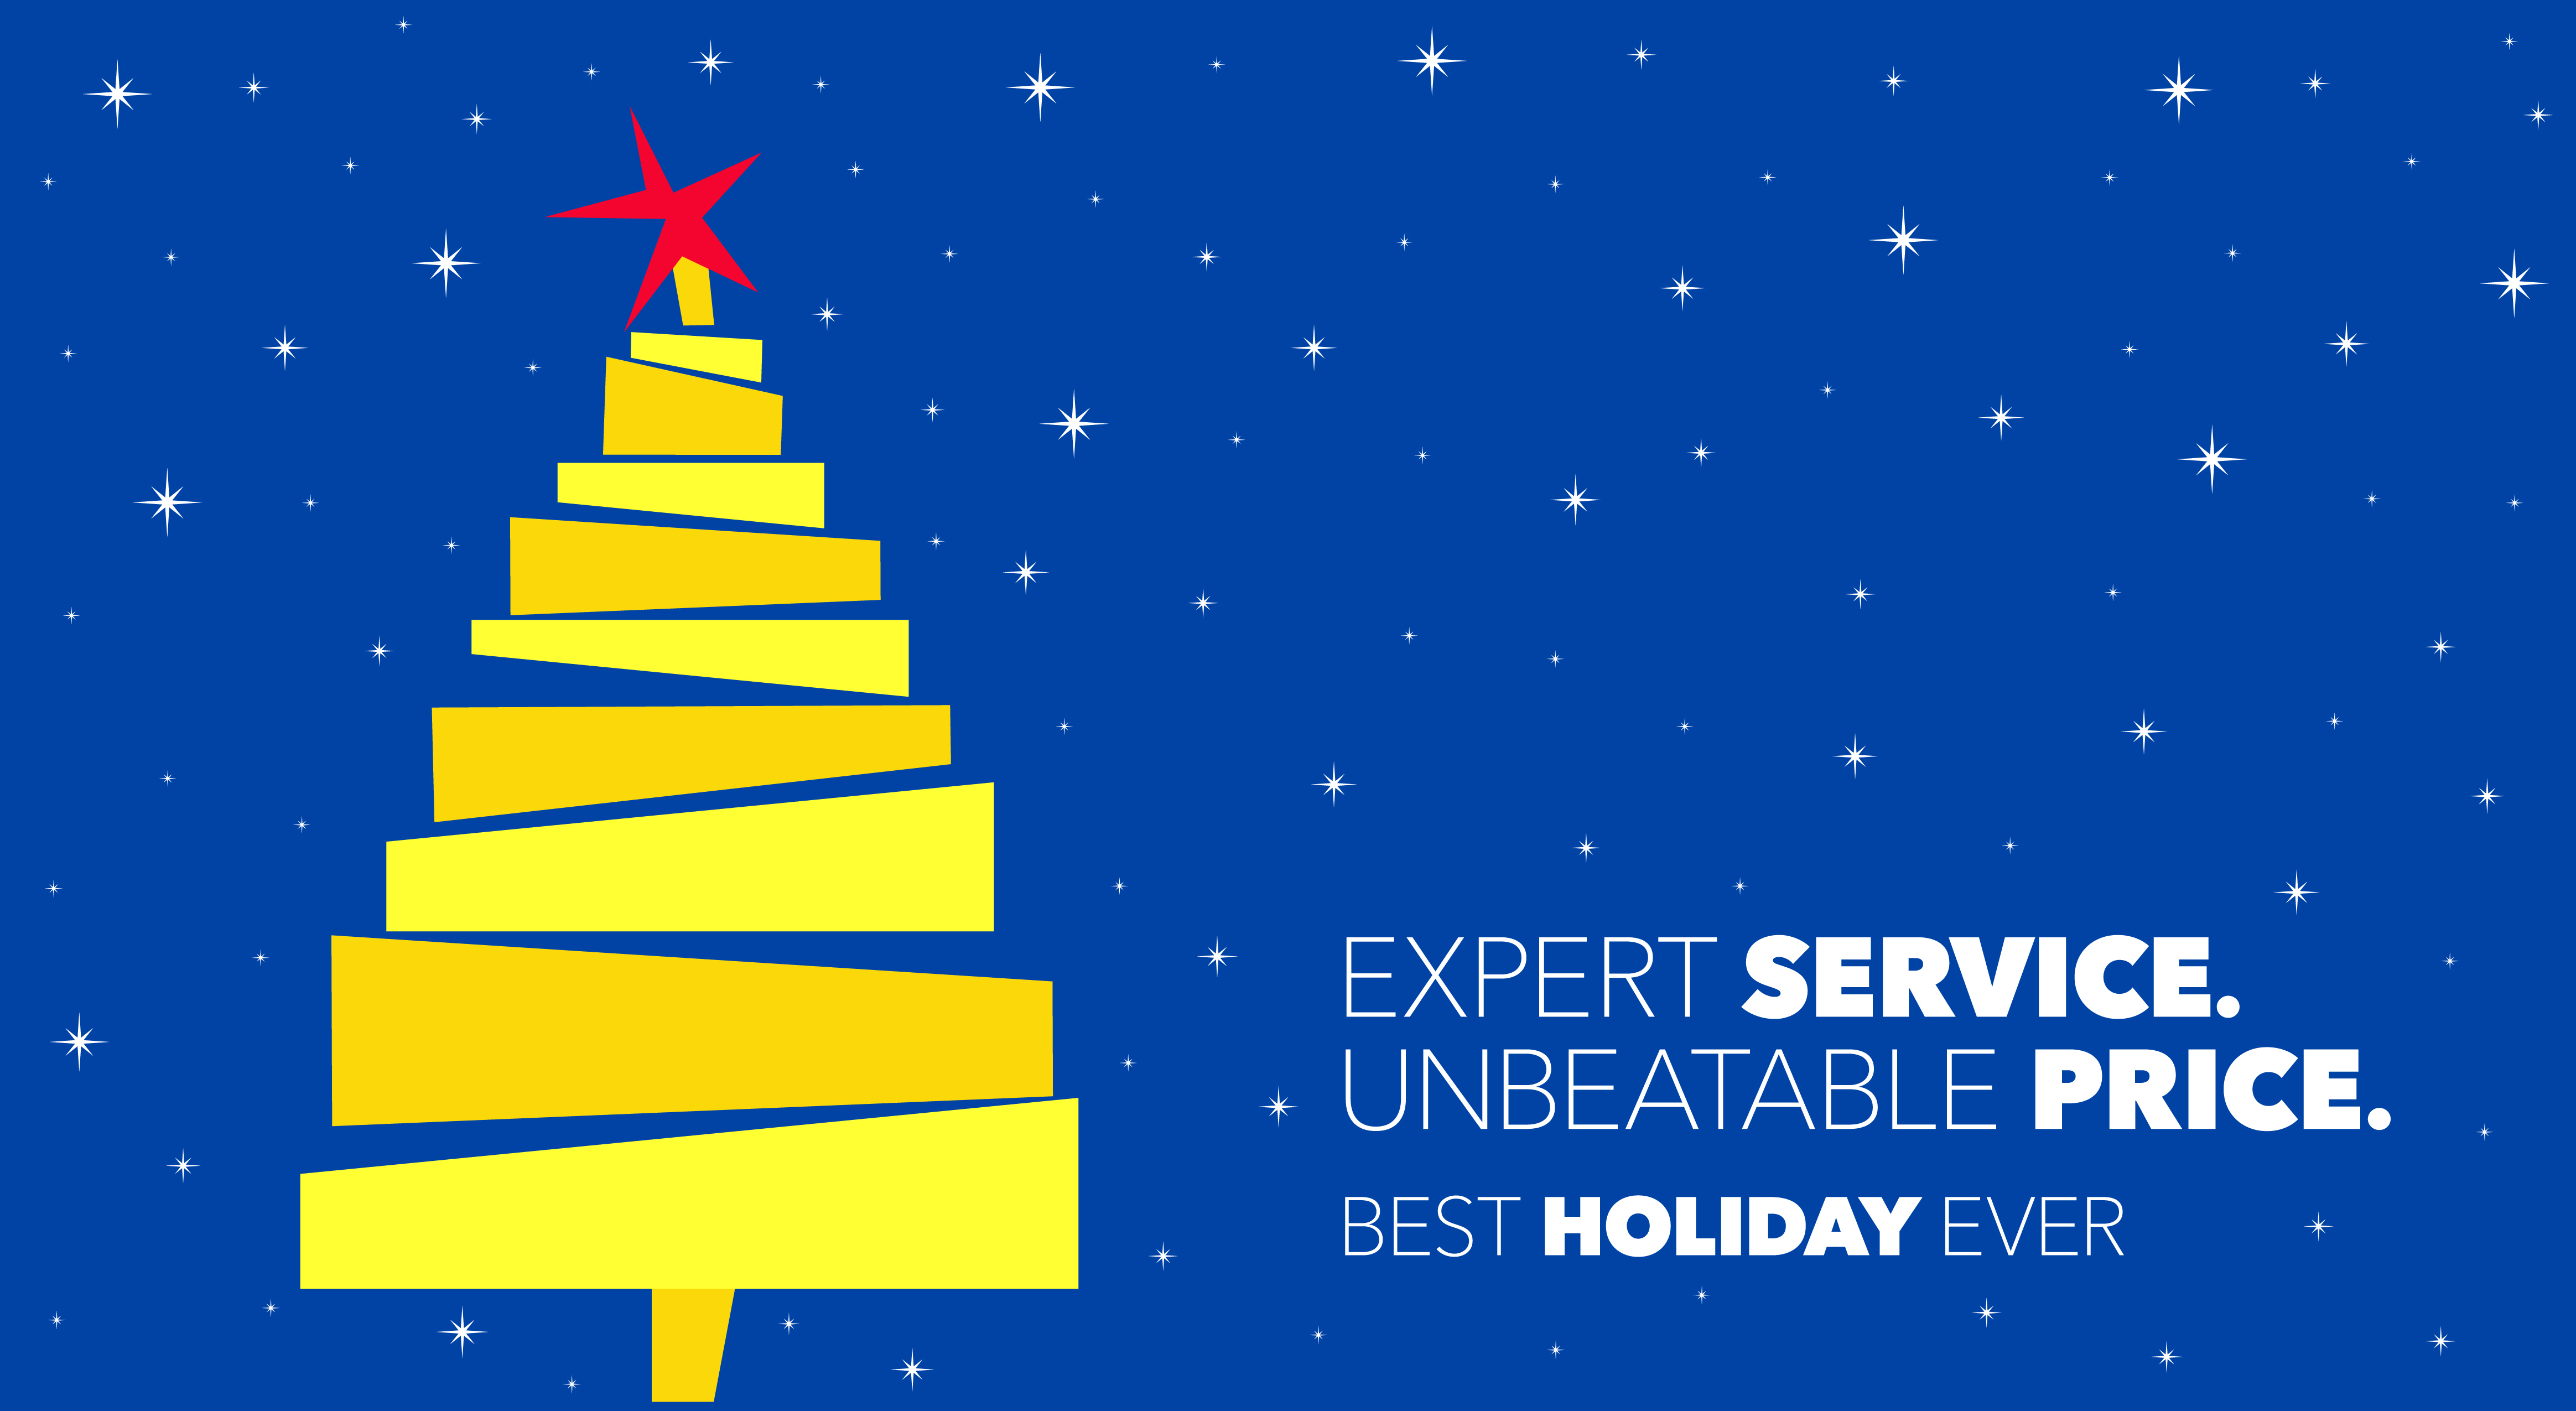 LG OLED is a Great Family Gift from Best Buy #HintingSeason #OLEDatBestBuy